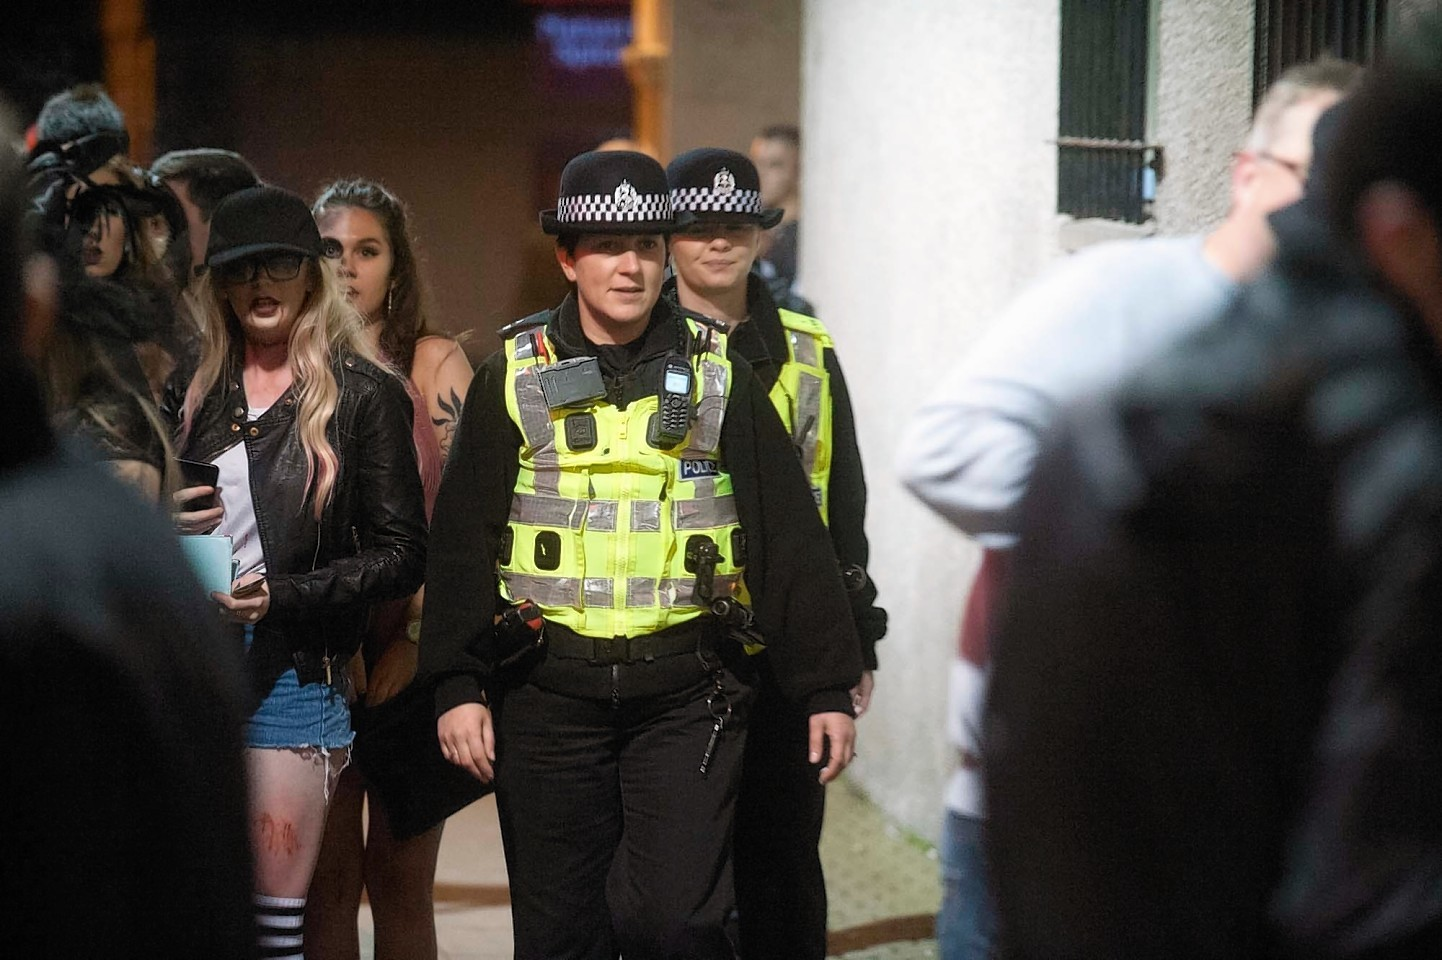 drink, drugs and halloween: police clampdown on scots revellers